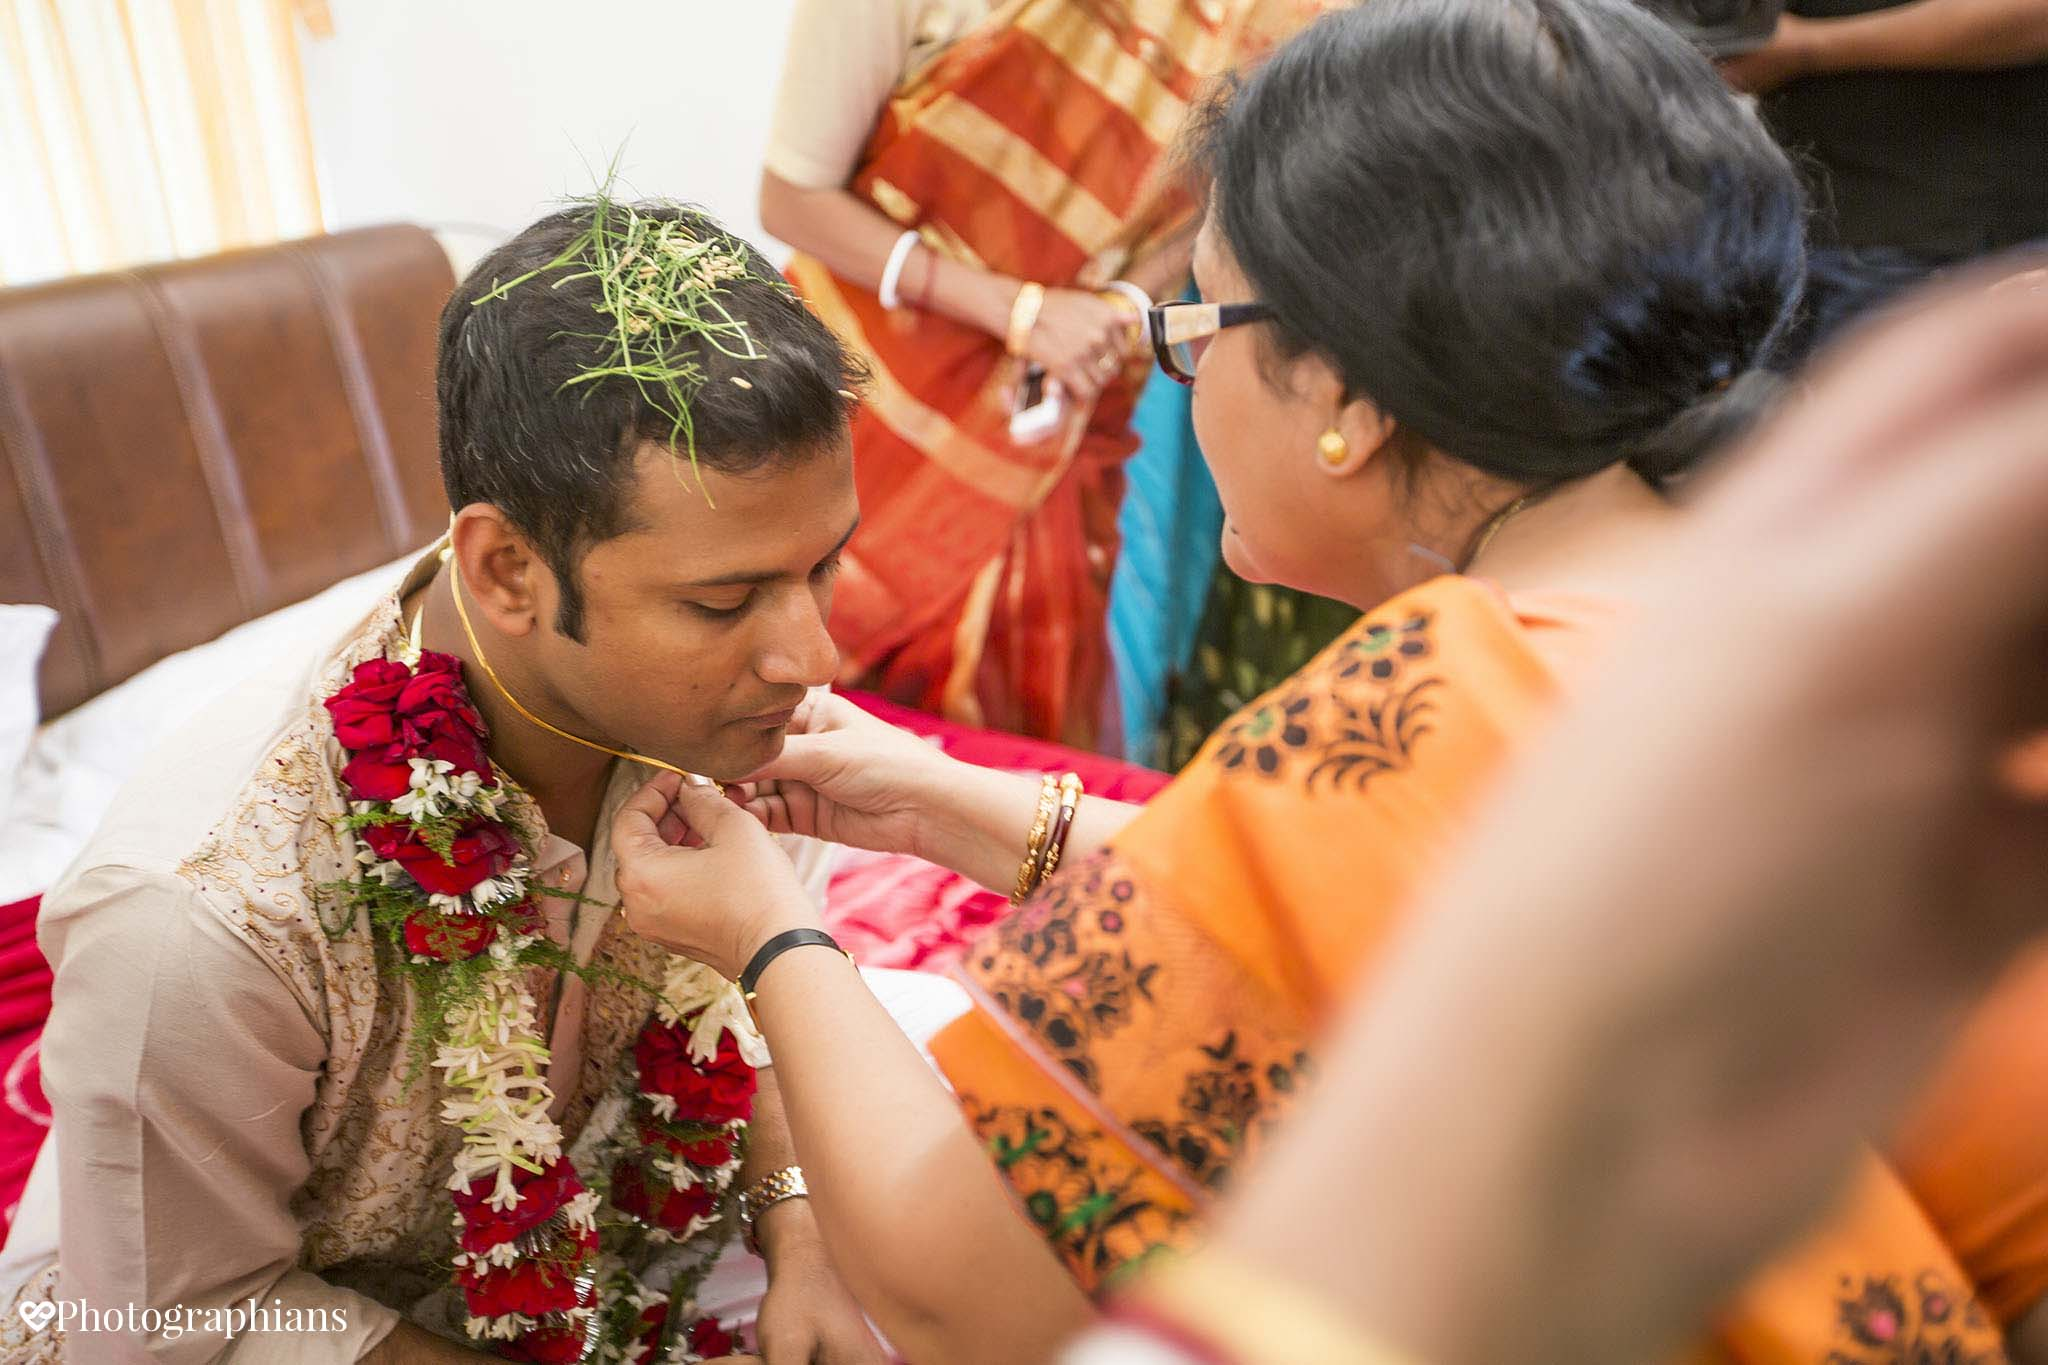 Photographians_Indian_Destination_Wedding_034